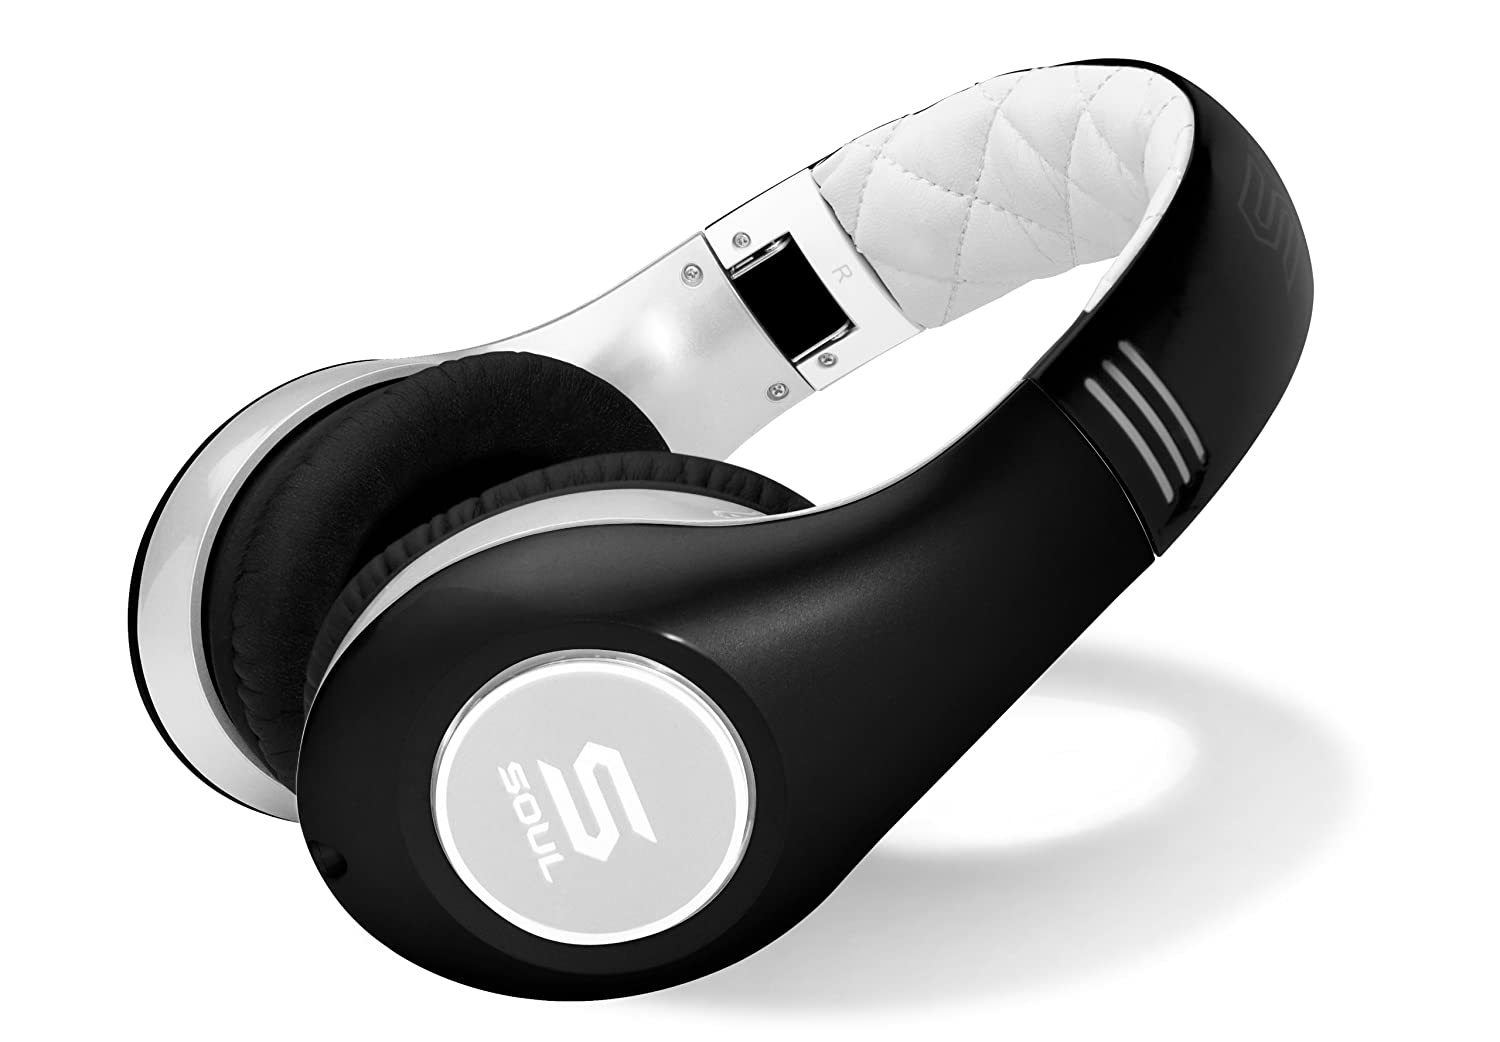 SOUL by Ludacris SL300WB High Definition Noise Canceling Headphones (Black/White) $99.99